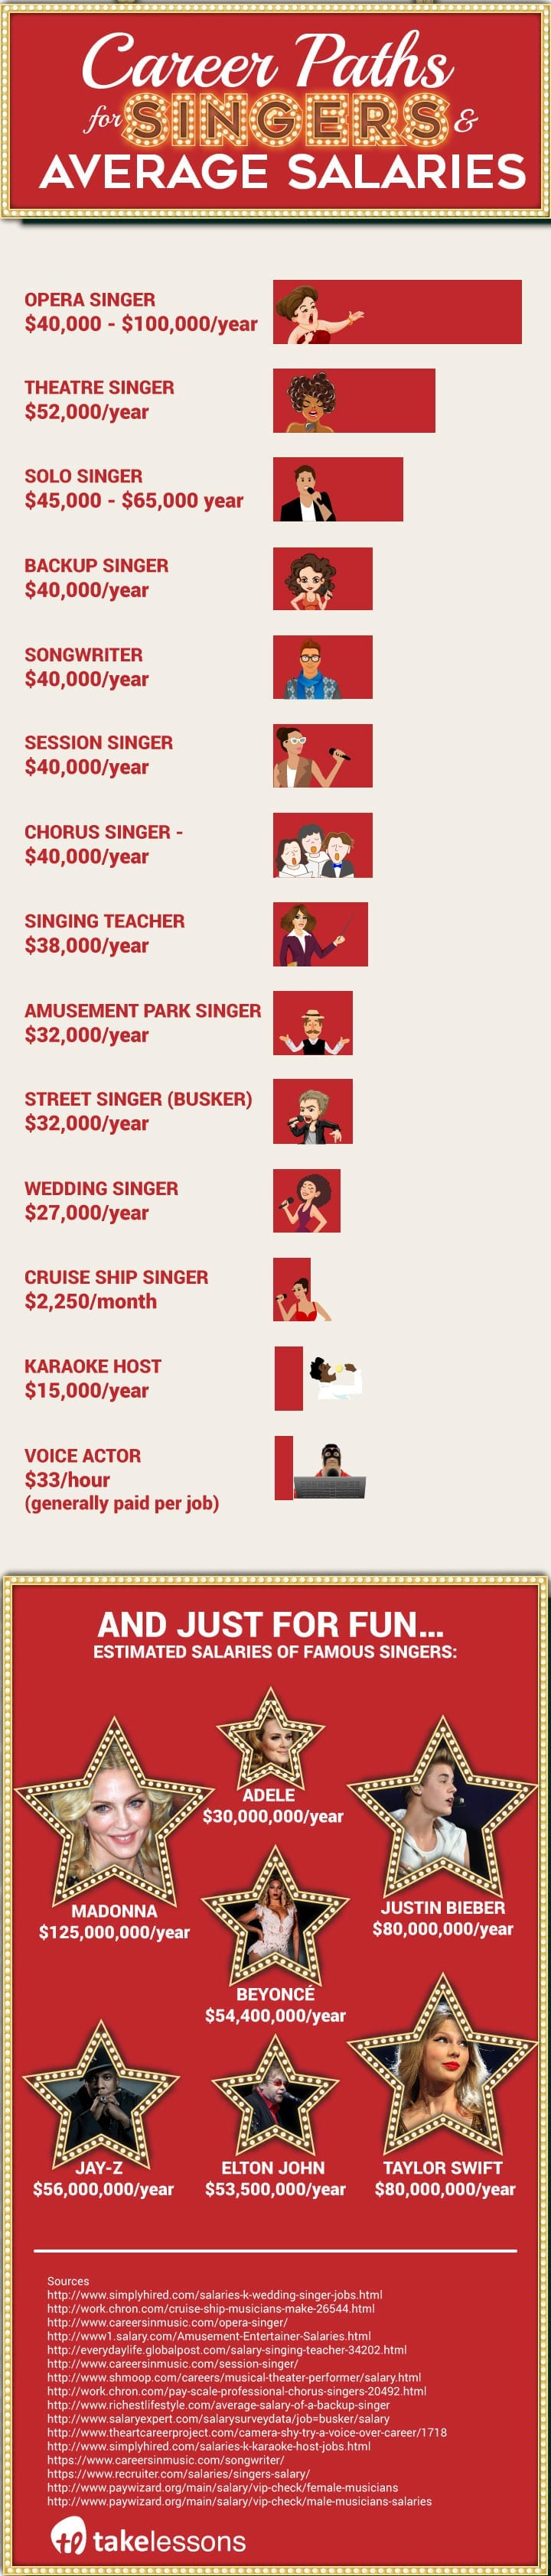 How To Become A Singer   Career Paths U0026 Average Salaries Infographic